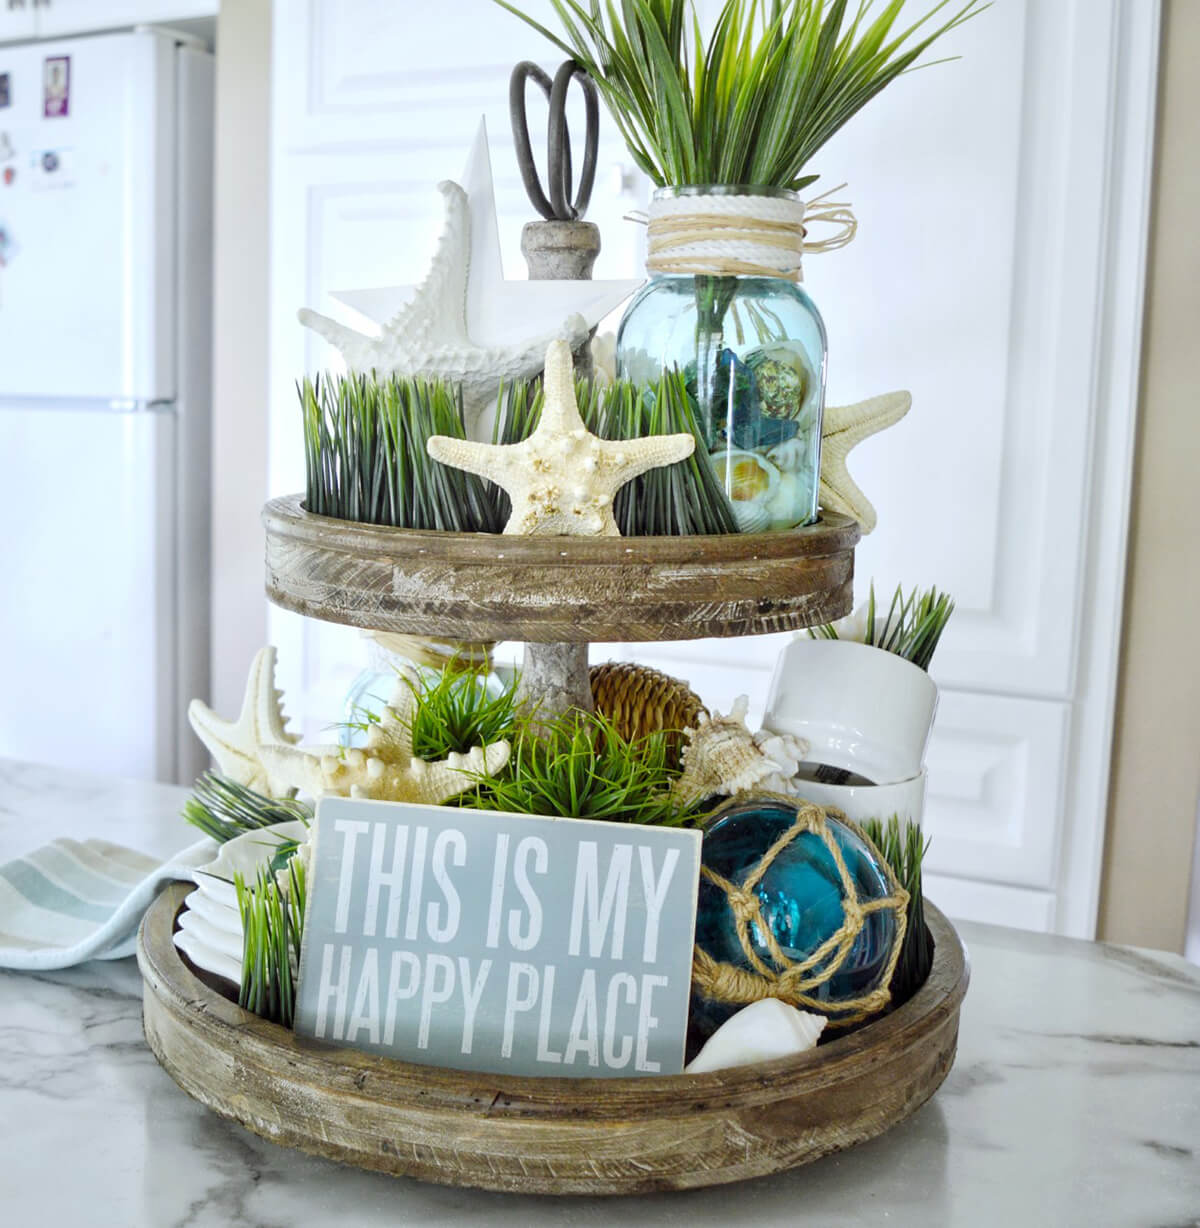 Tiered Tray for Pretty Storage and Home Organization with Happy Place Sign